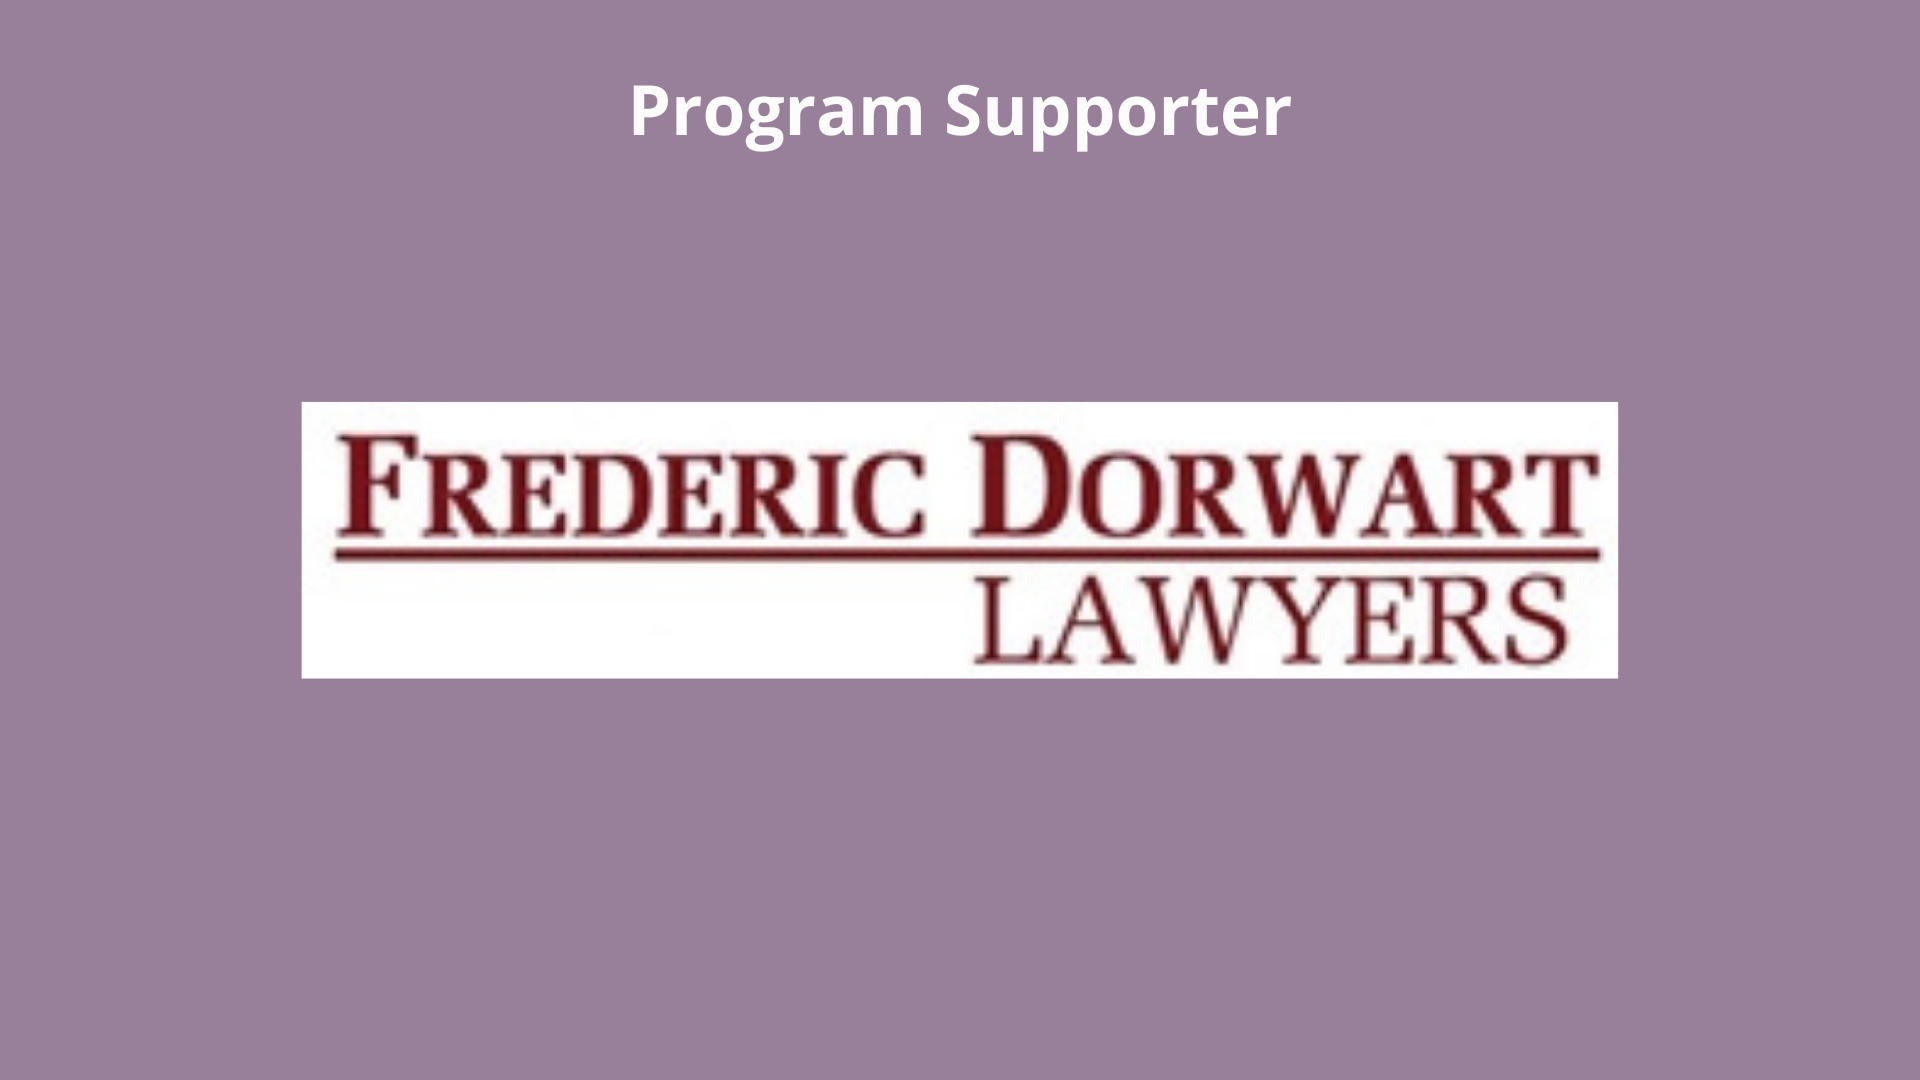 Frederic Dorwart Lawyers